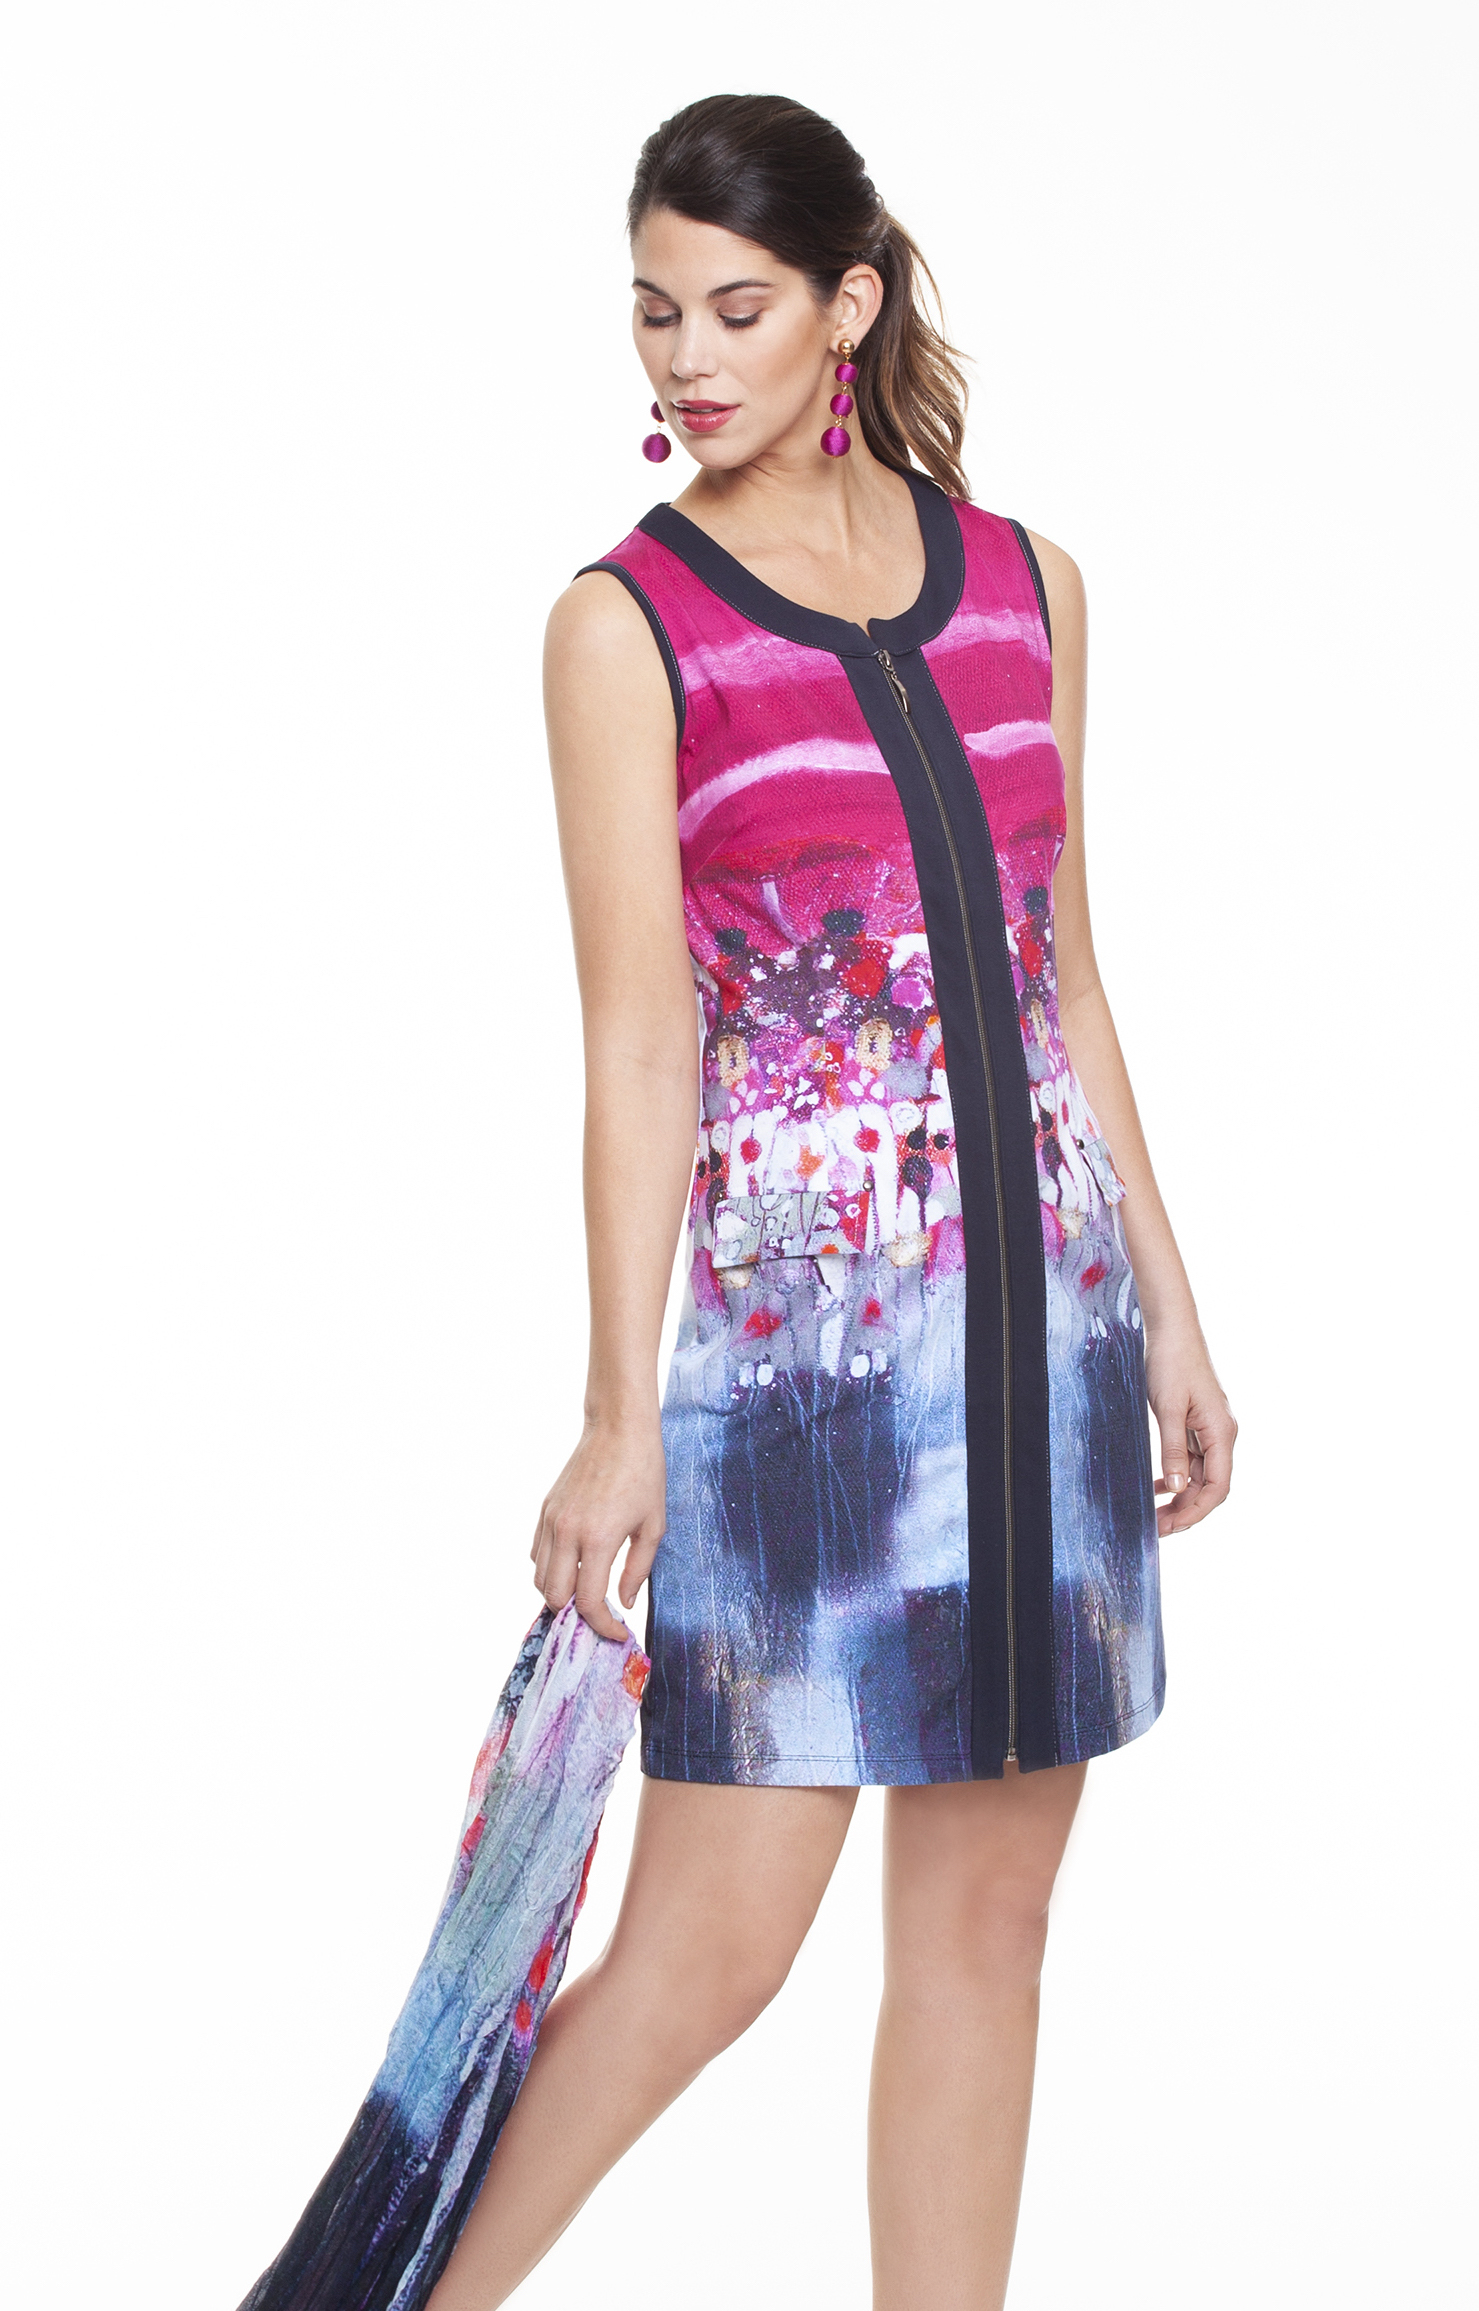 Simply Art Dolcezza: Fuschia Candy Storm Abstract Art Zip Dress (1 Left!) DOLCEZZA_SA_19653